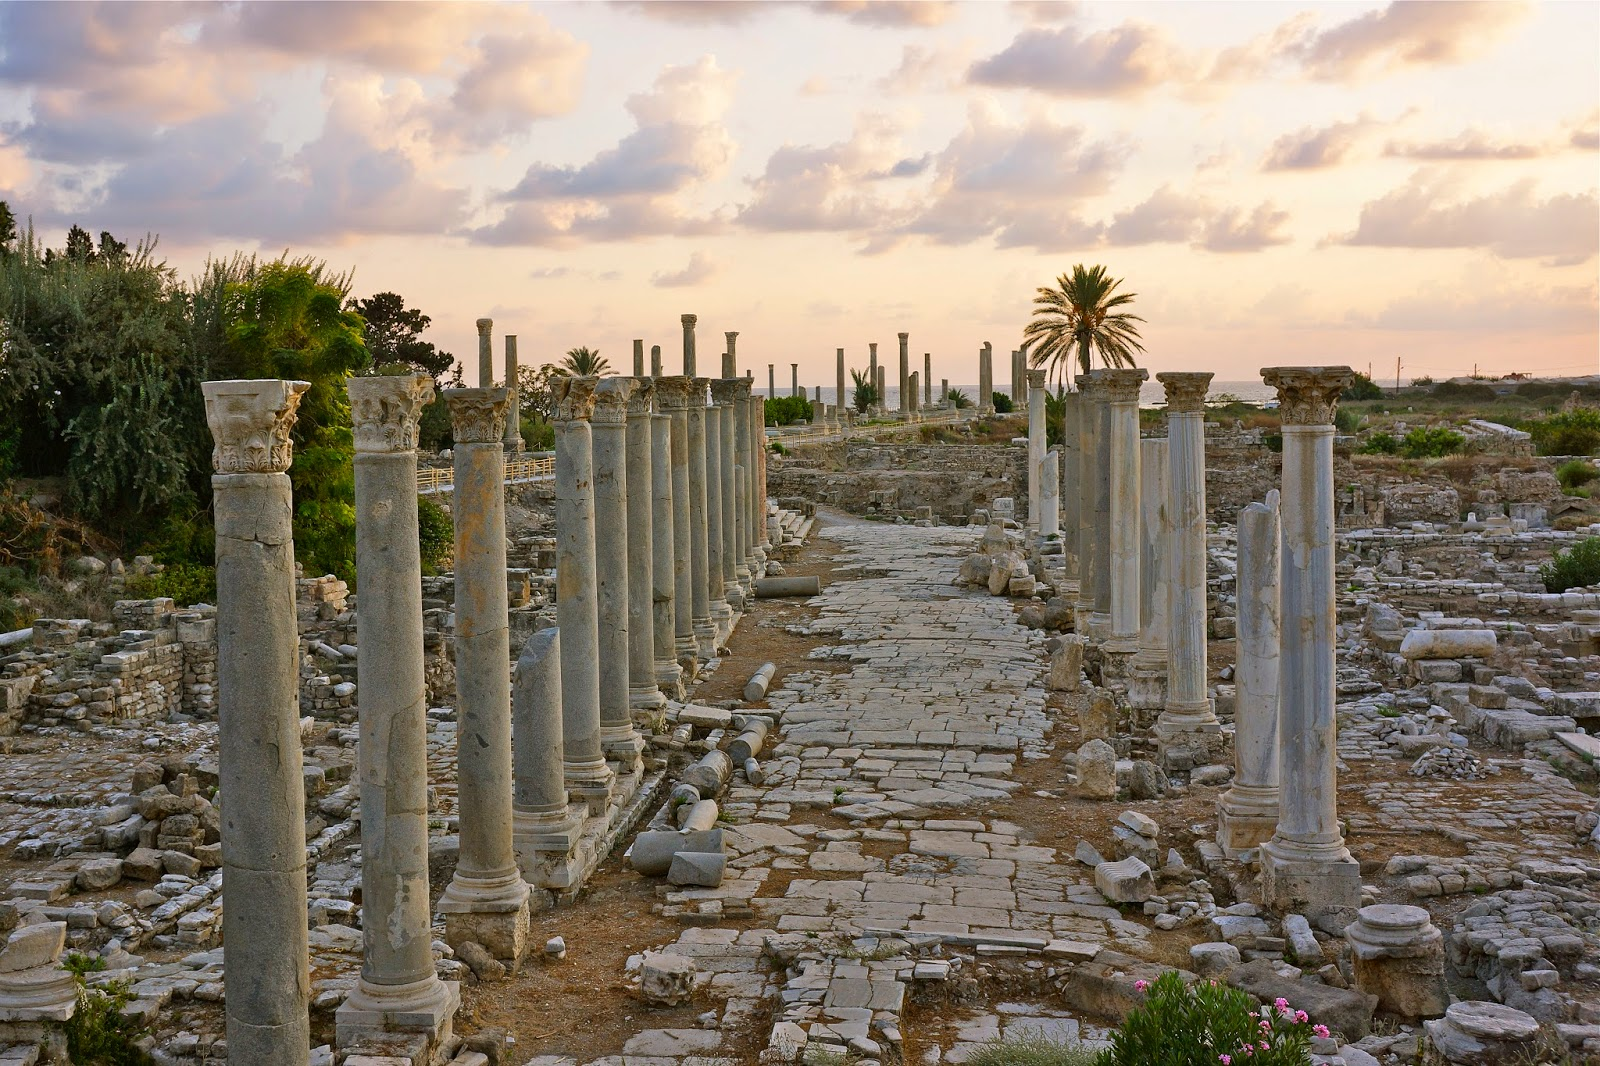 Photoblog On-The-Go: Roman Road and Columns in Tyre, Lebanon